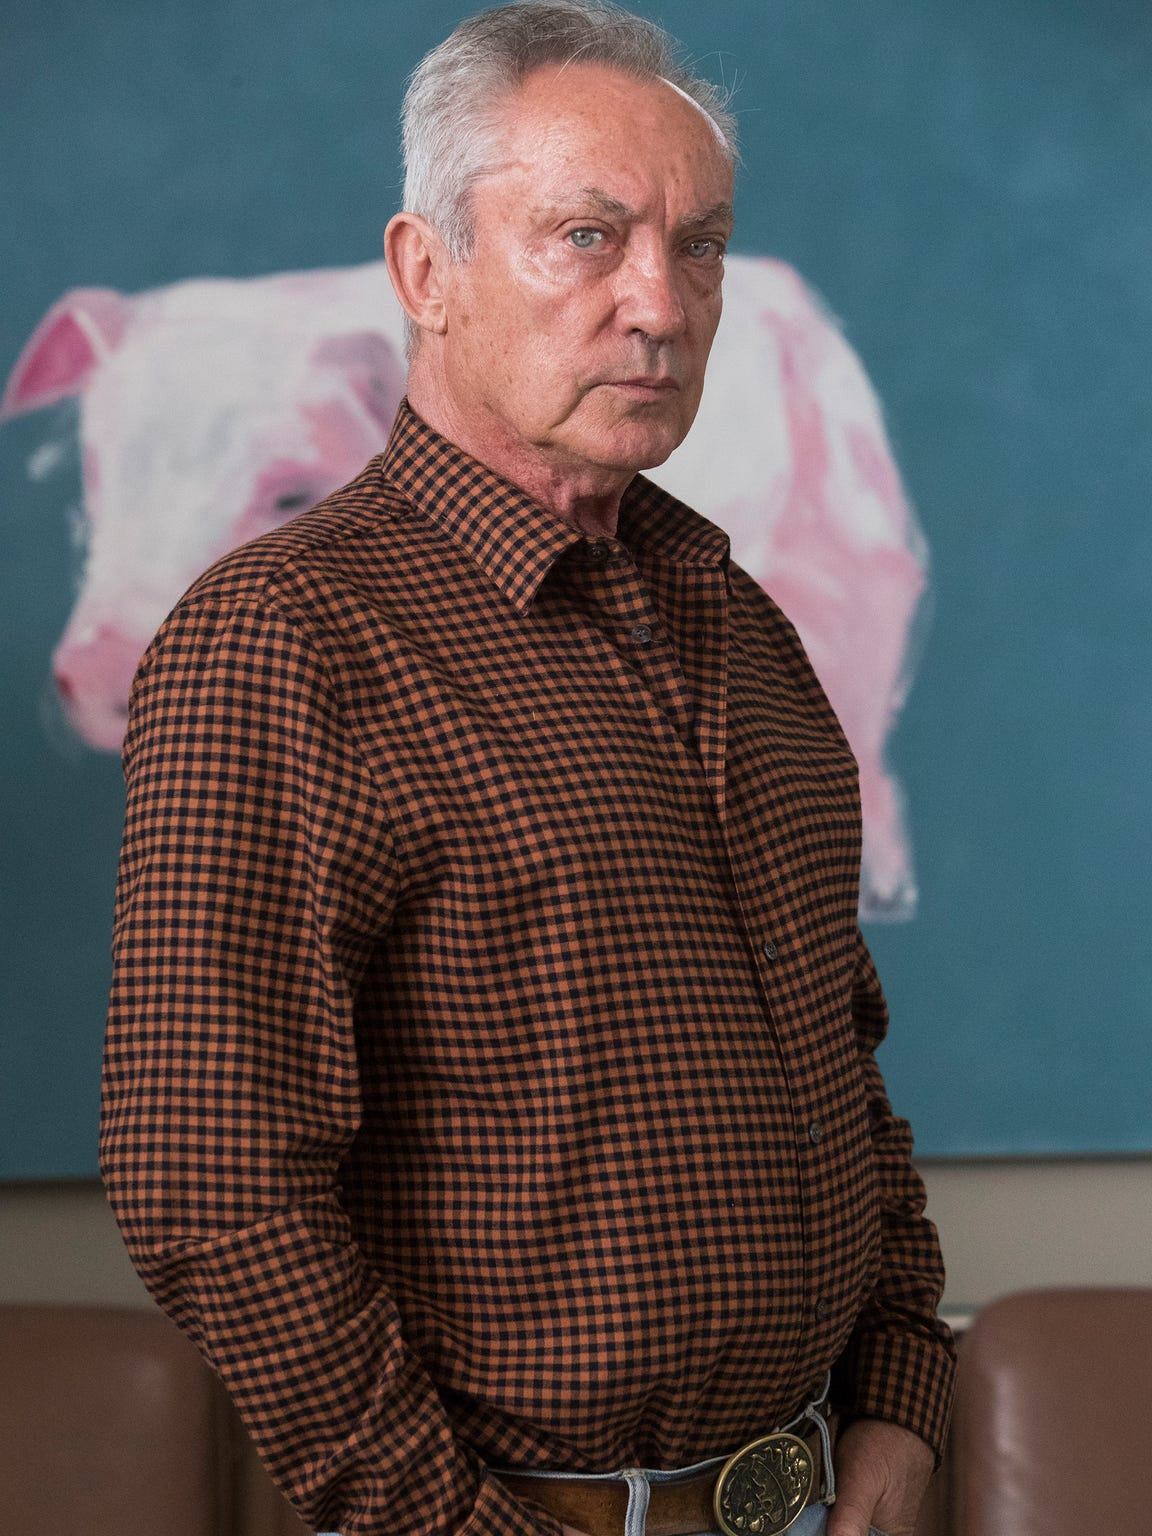 Udo Kier, a friend and collaborator of Andy Warhol is photographed at his home in the winter of 2018.